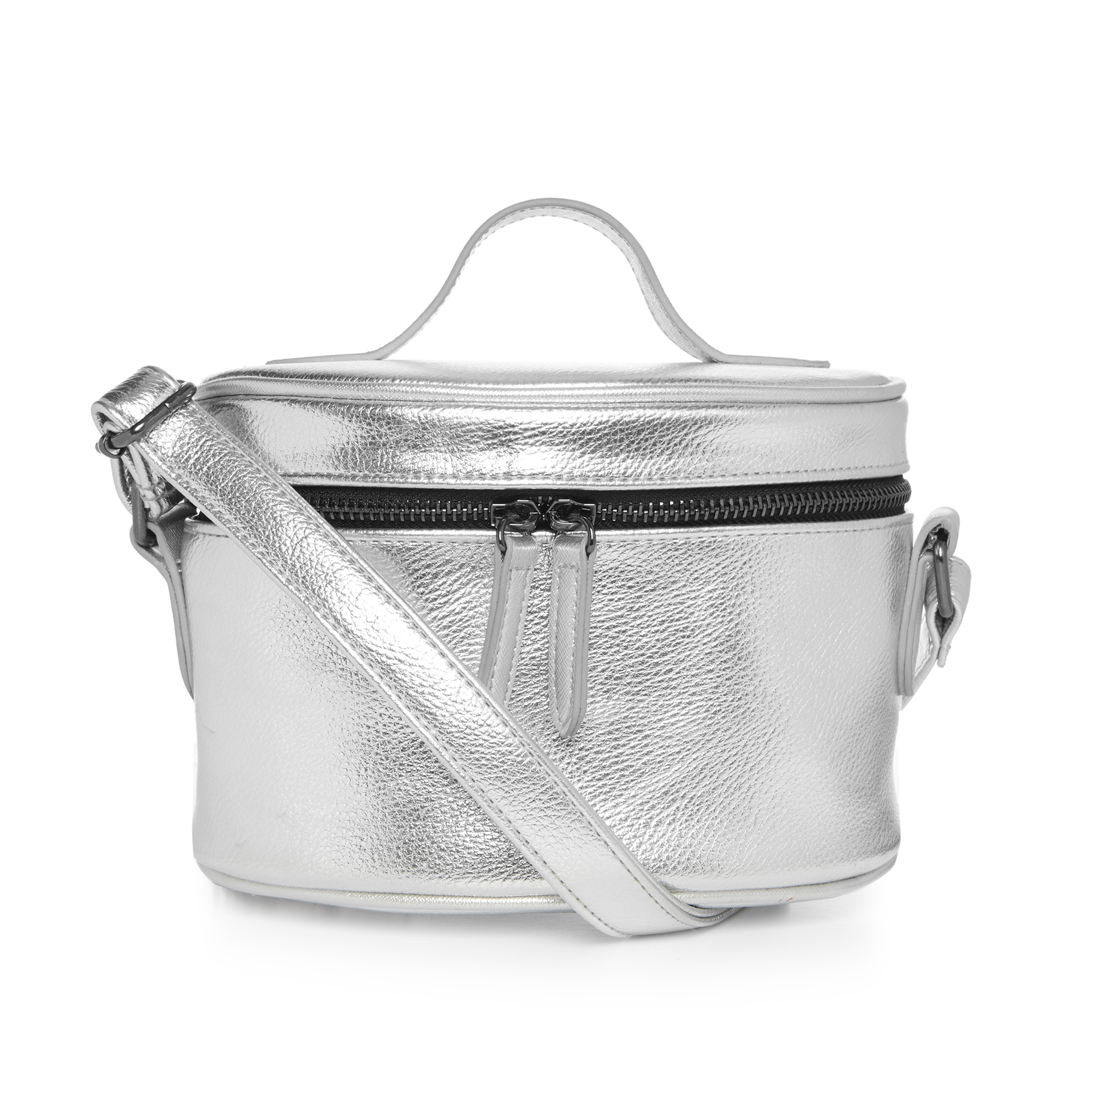 Silver metallic camer bag - €8